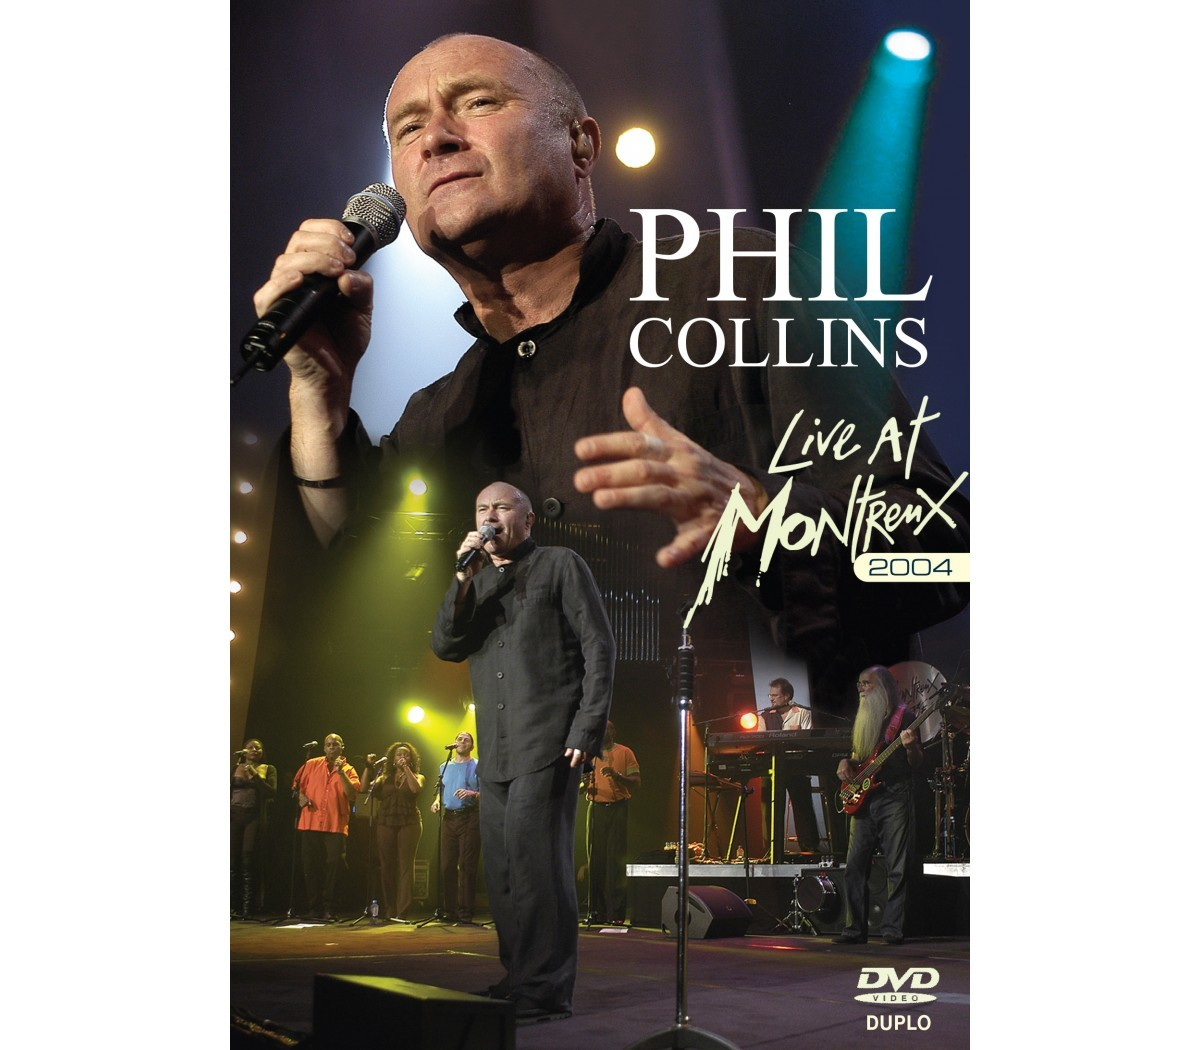 Phil Collins is Live at Montreux 2004 on DVD image